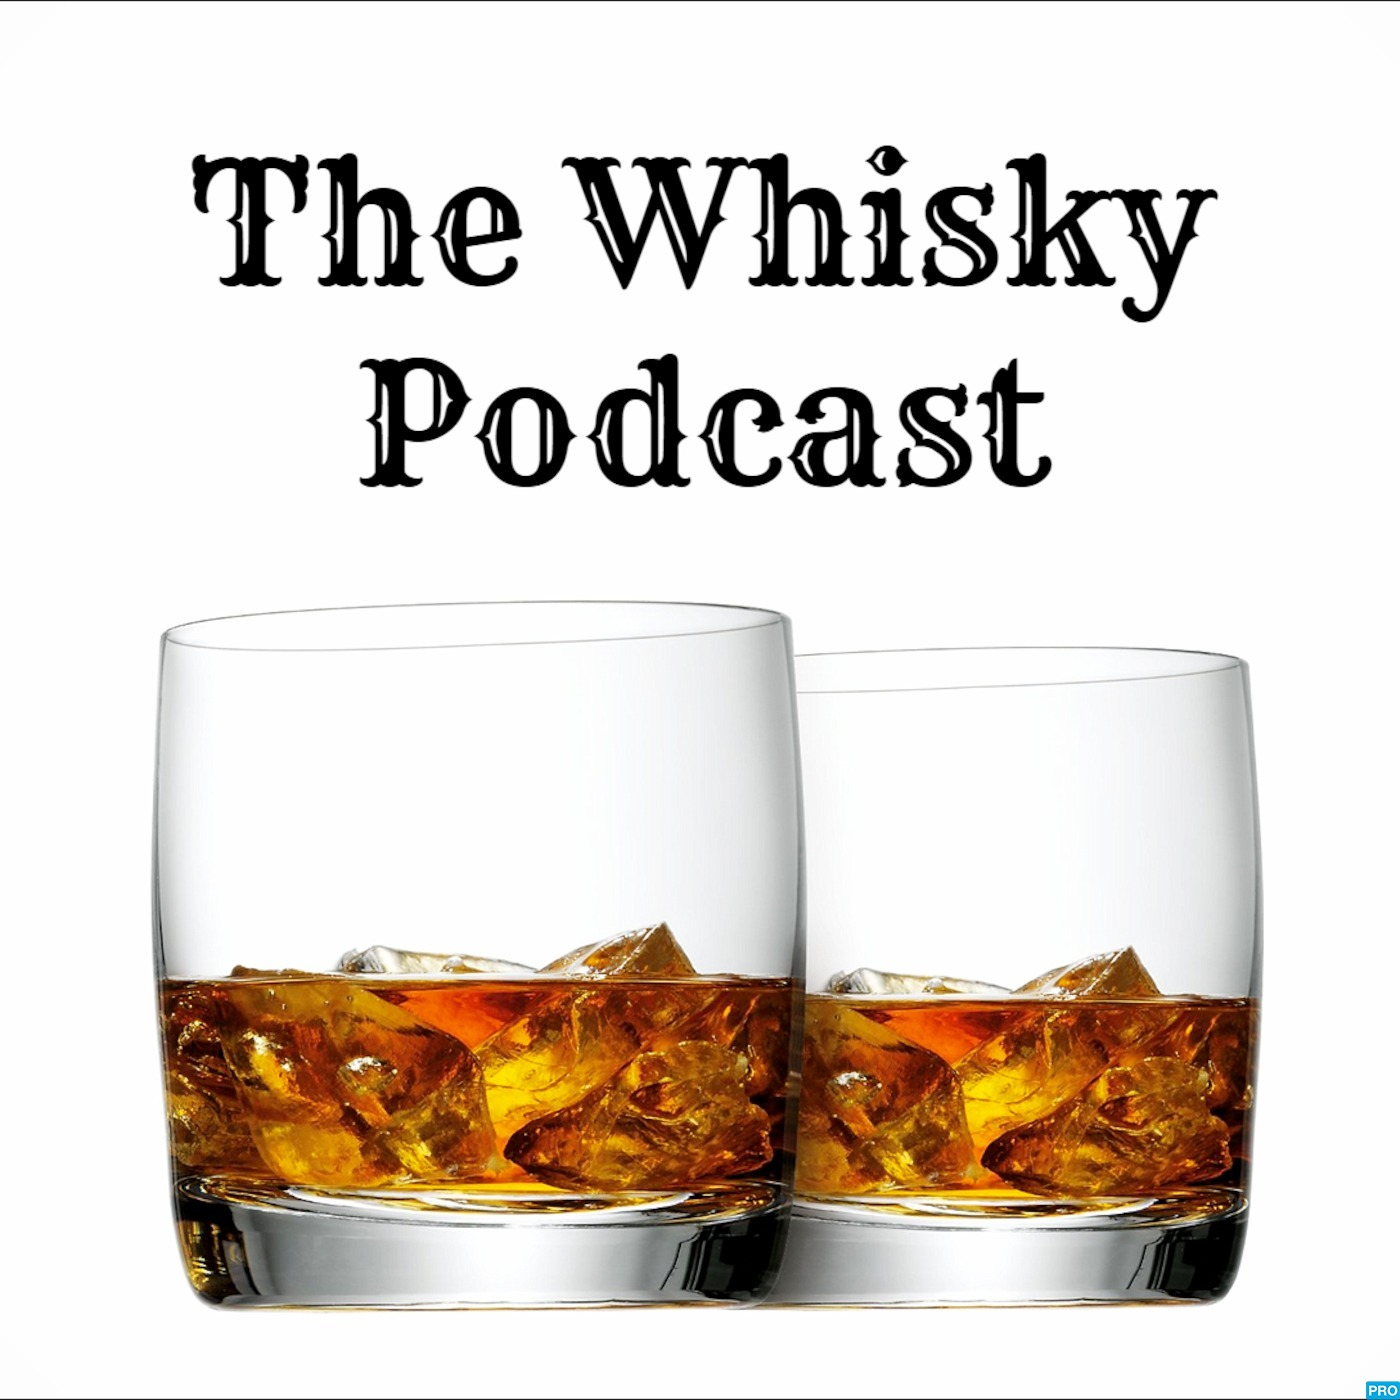 The Whisky Podcast